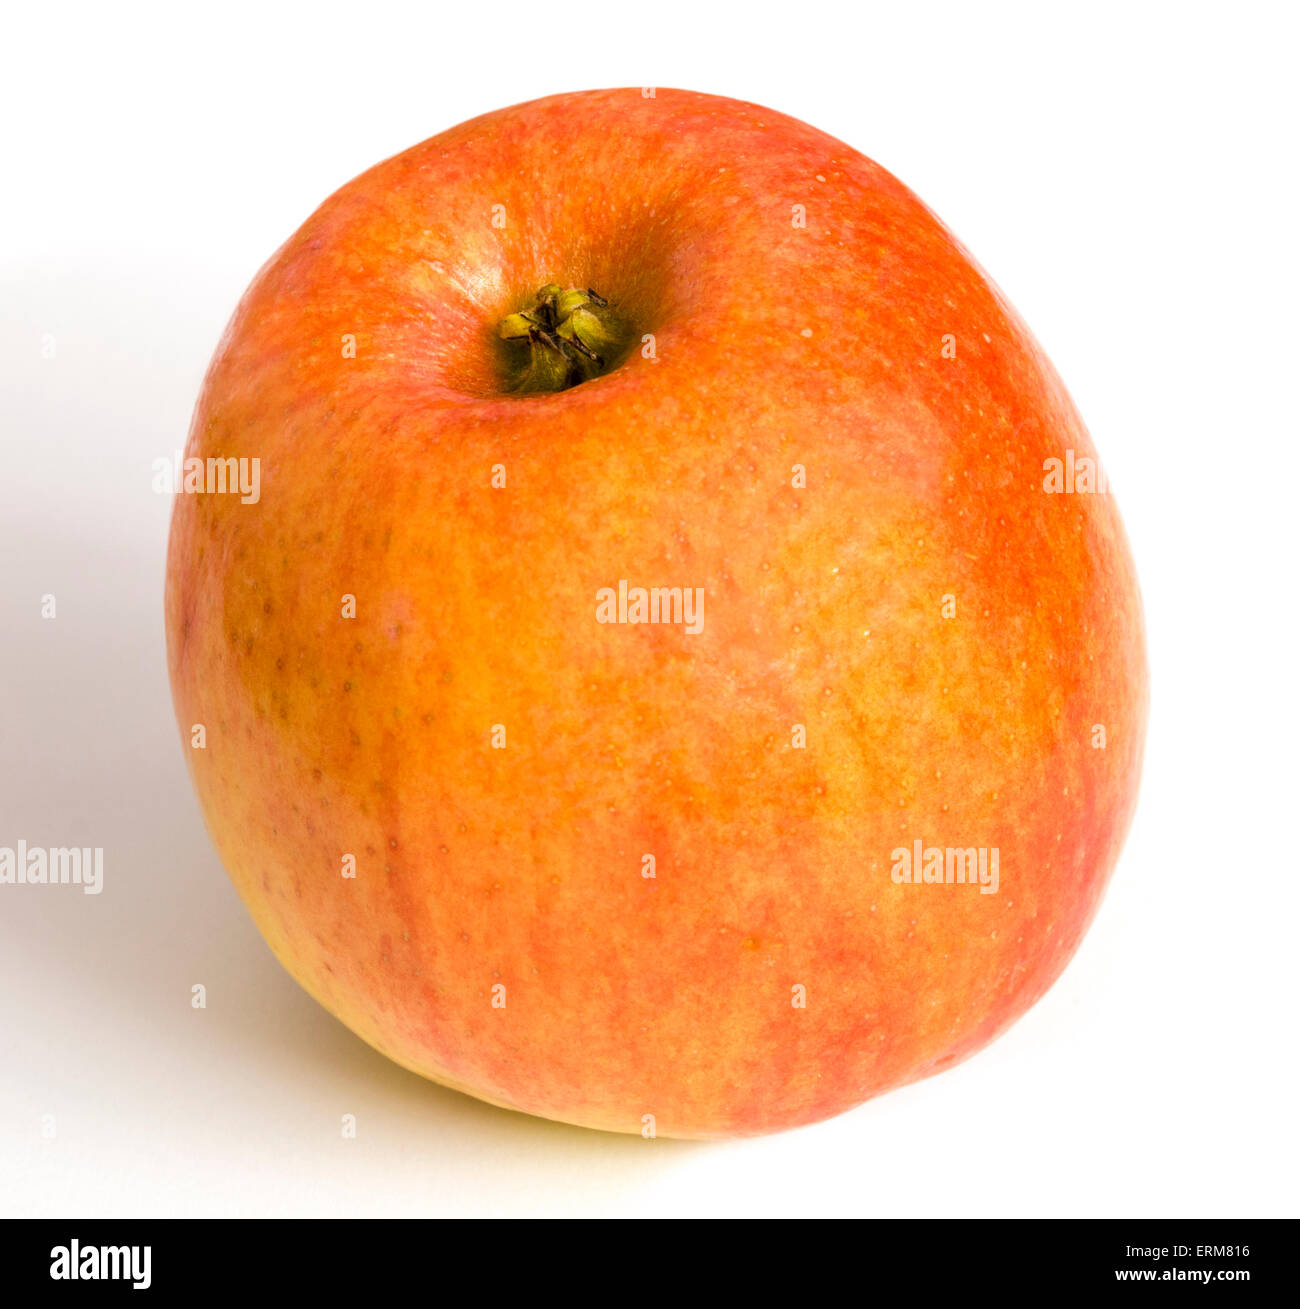 Braeburn apple on a white background. Stock Photo